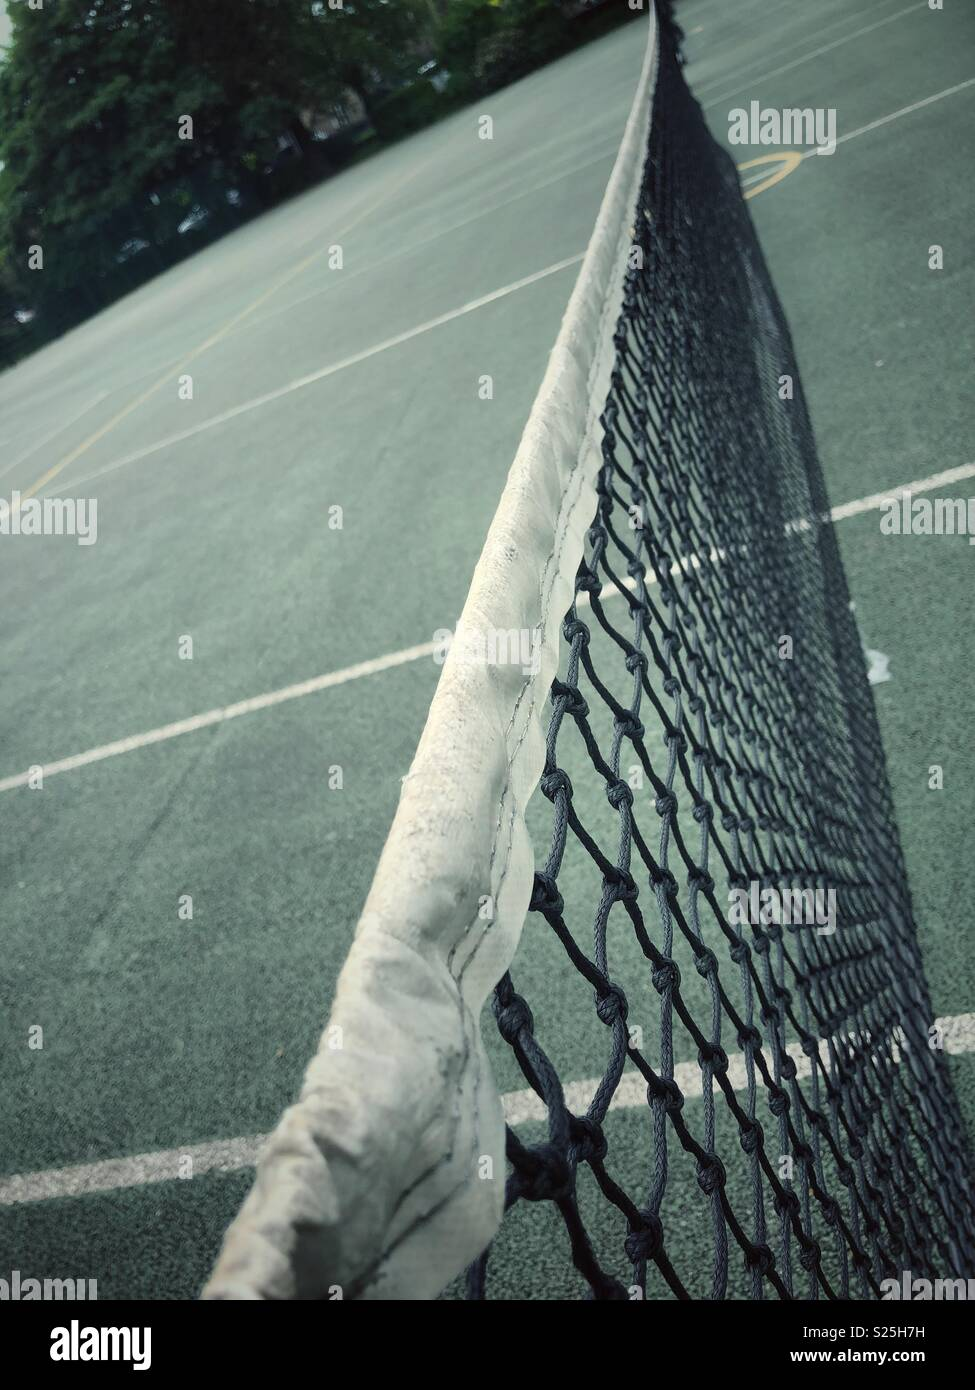 Tennis court at Greenhead Park in Huddersfield, West Yorkshire, United Kingdom - Stock Image